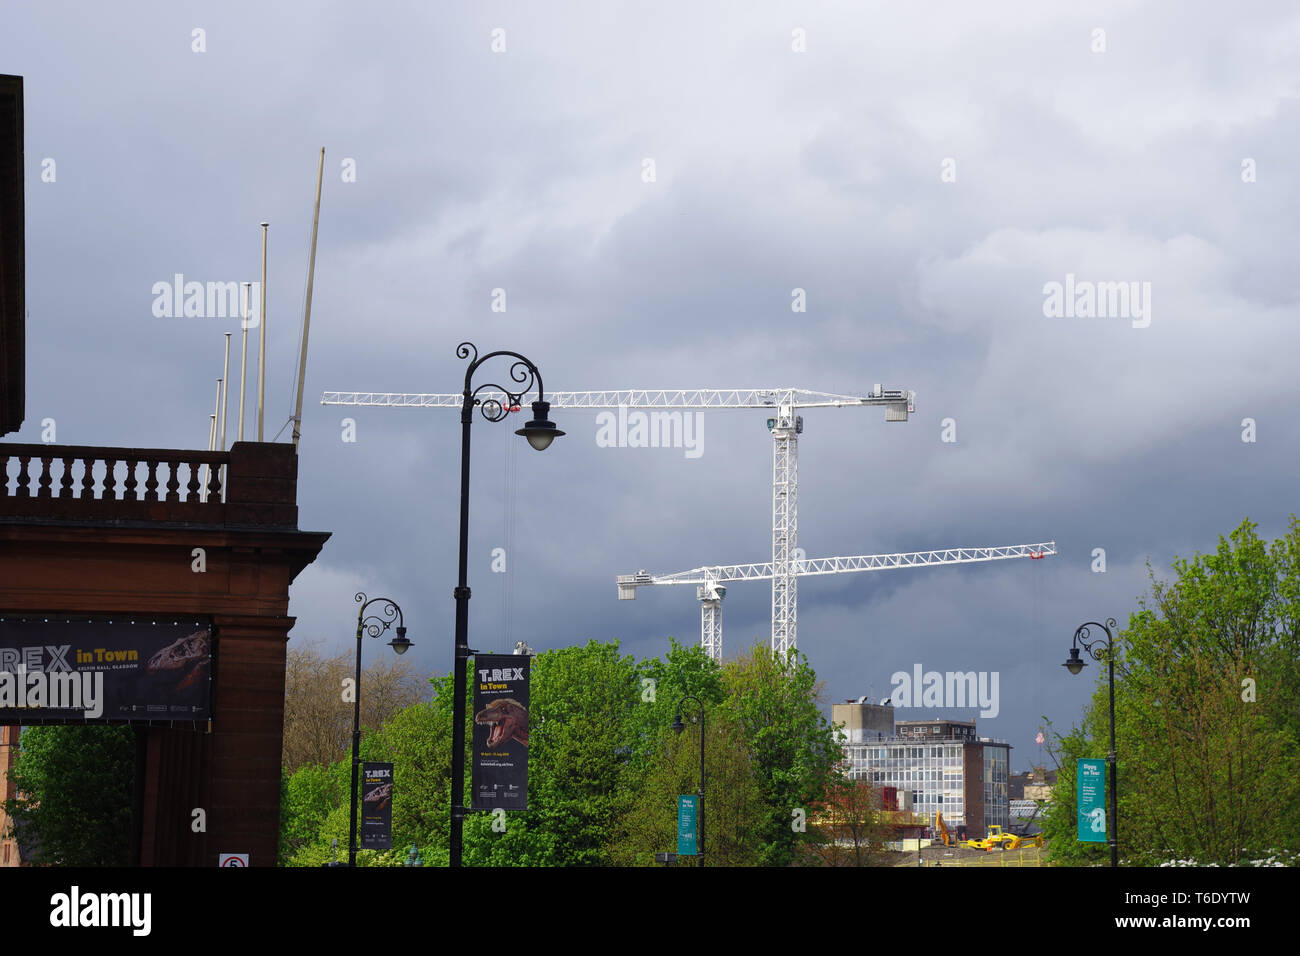 Building cranes in the sky on the site of the former Great Western Hospital in Partick, Glasgow. - Stock Image